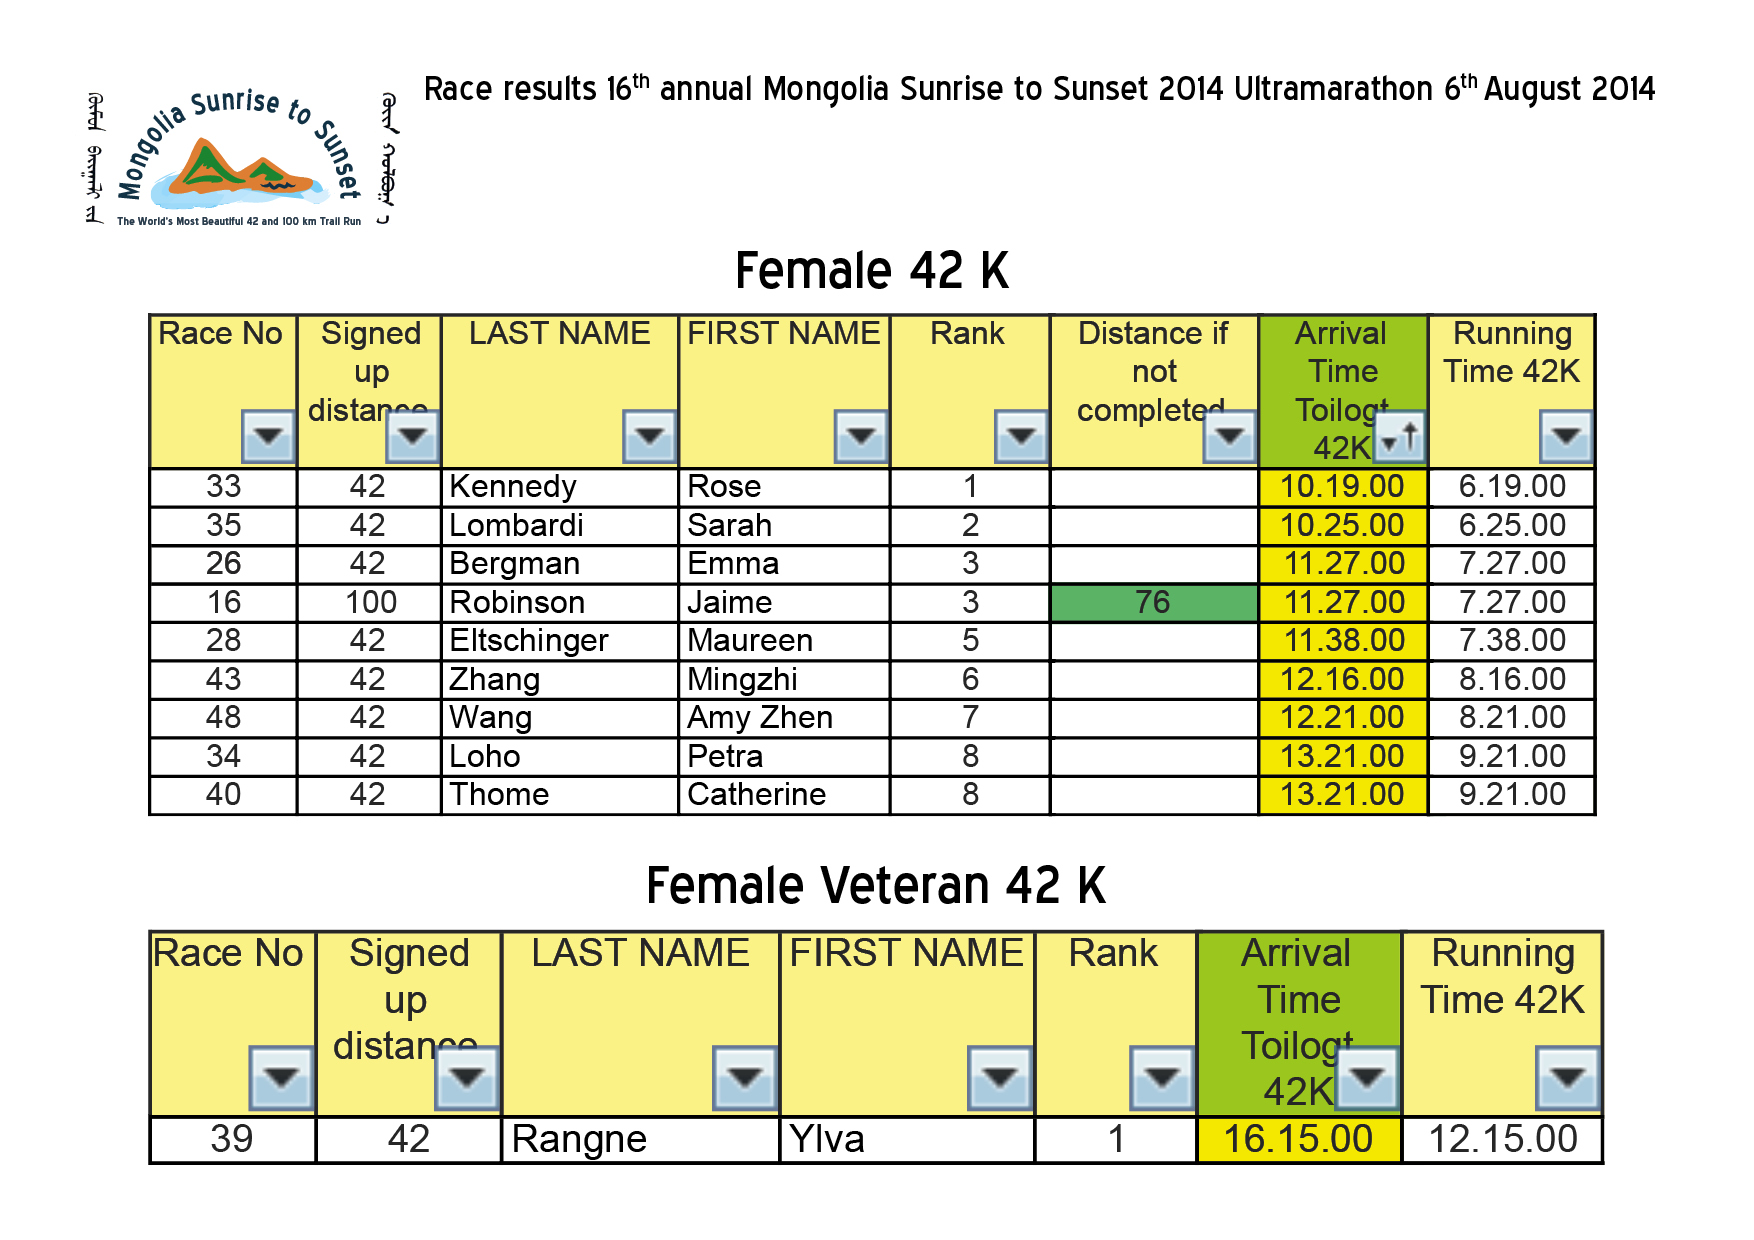 Race results 16th annual Mongolia Sunrise to Sunset 2014 Ultramarathon